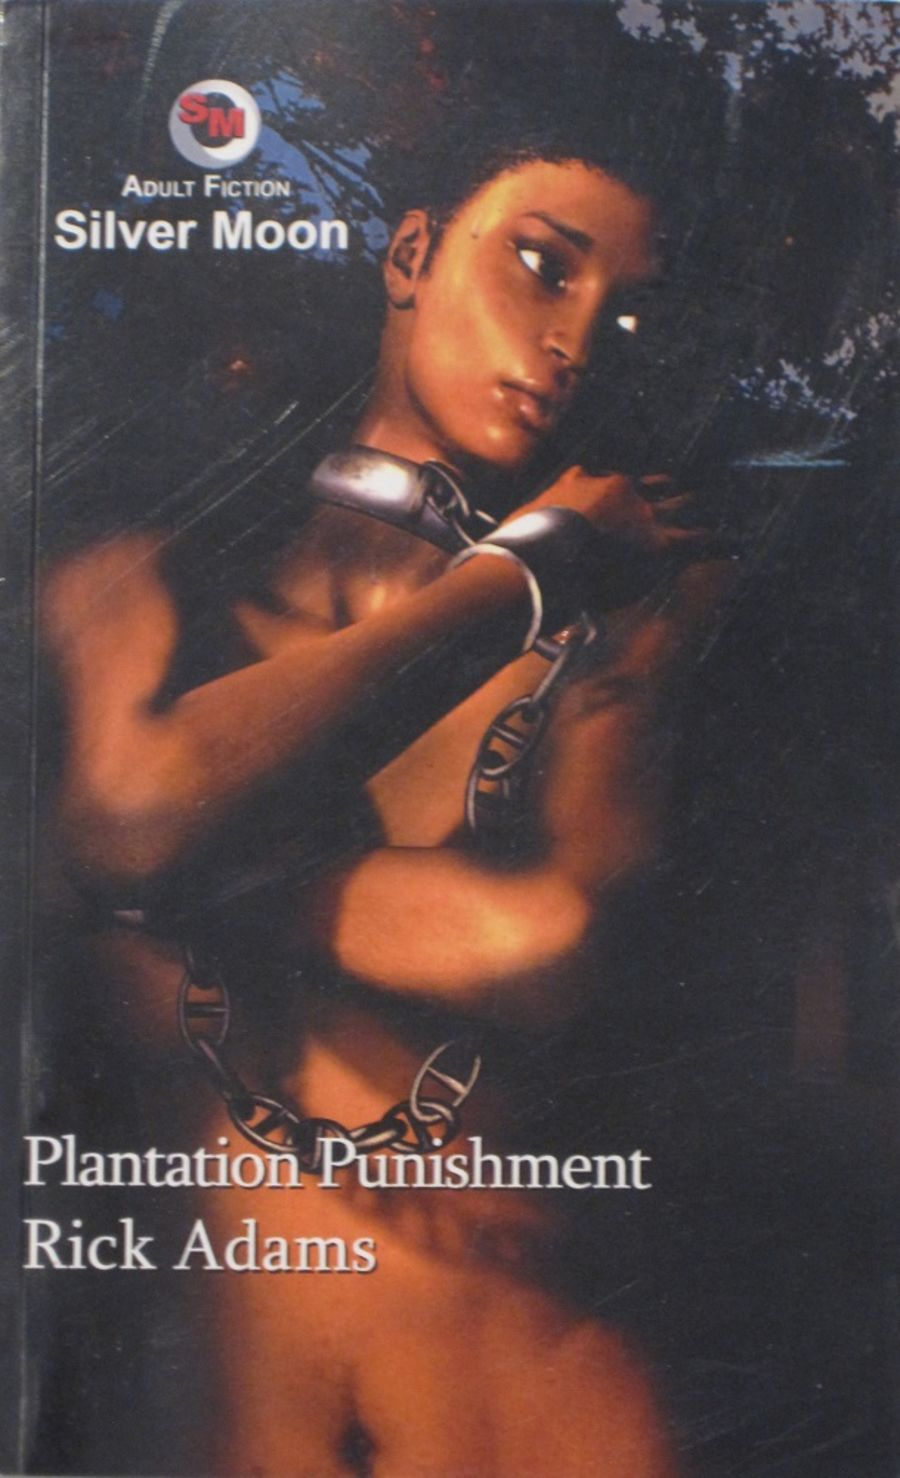 PLANTATION PUNISHMENT.  2006 EROTIC FICTION PAPERBACK BOOK.